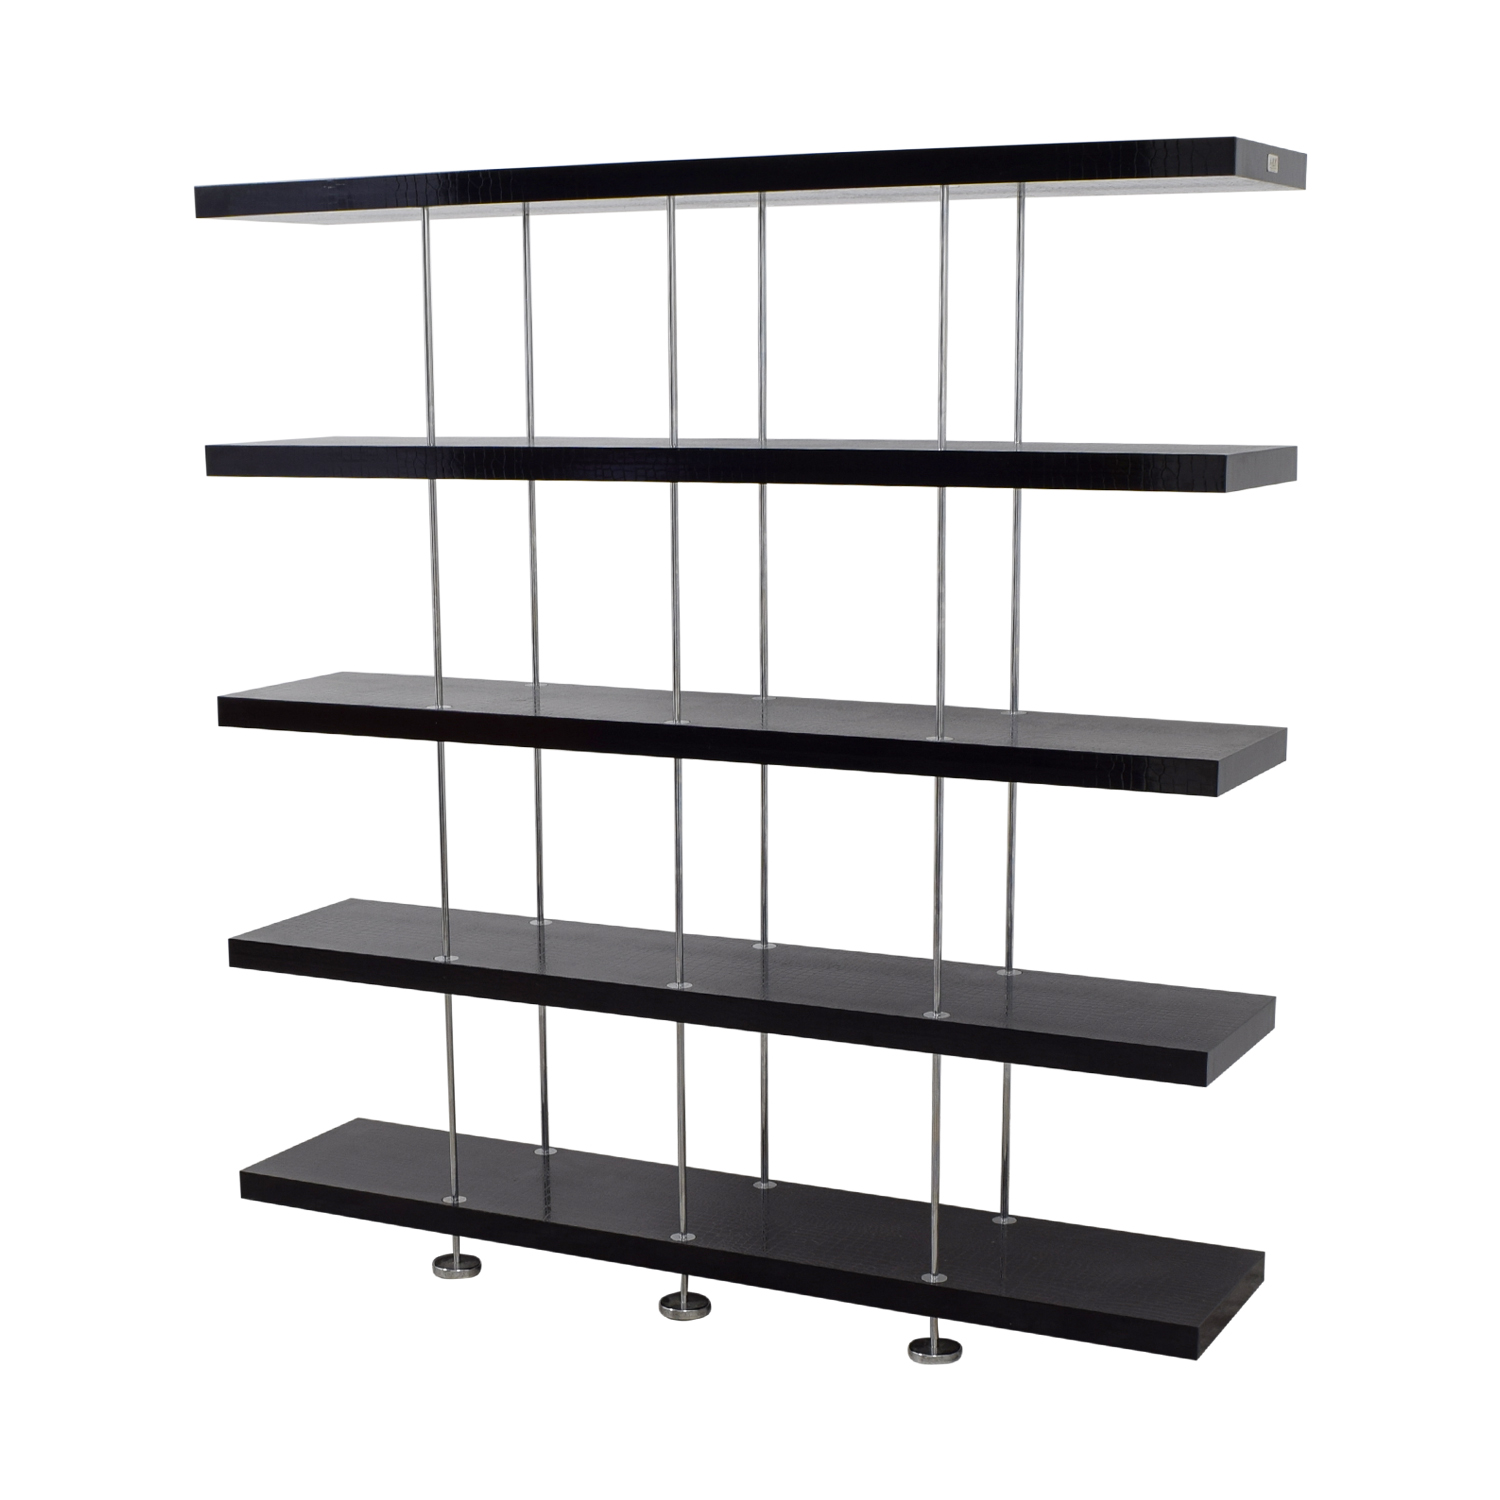 A&X A&X Stafford Crocodile Embossed Room Divider Bookshelf Storage